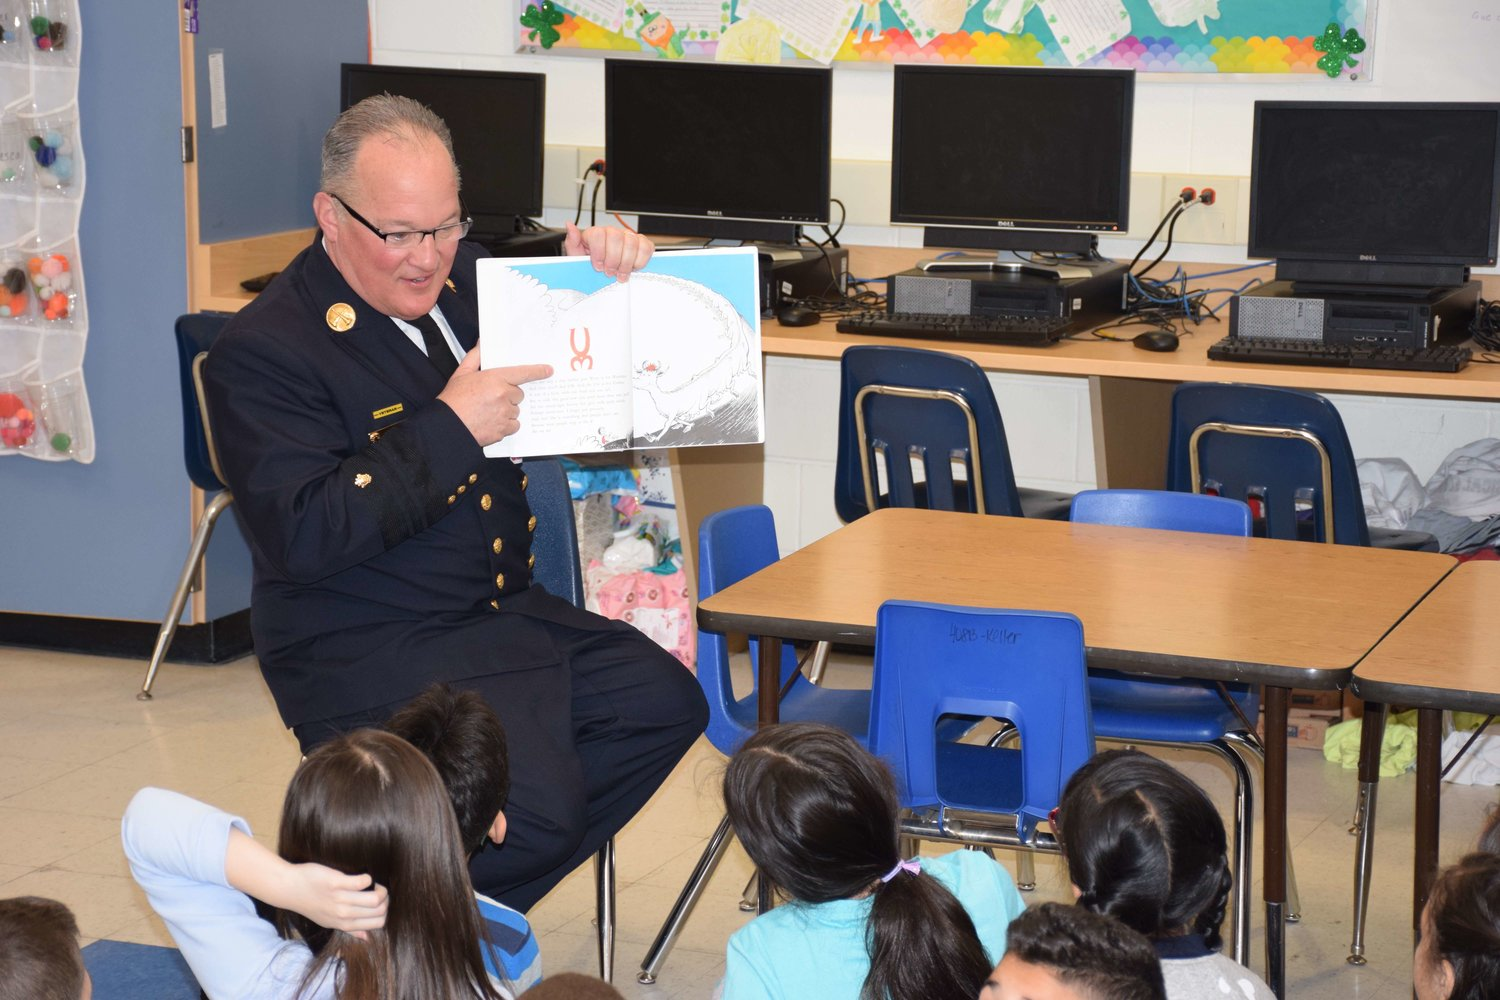 Paul Kosiba, the third assistant chief of the East Meadow Fire Department, read to a class at Bowling Green Elementary School on March 8 as part of its Pick a Reading Partner program.